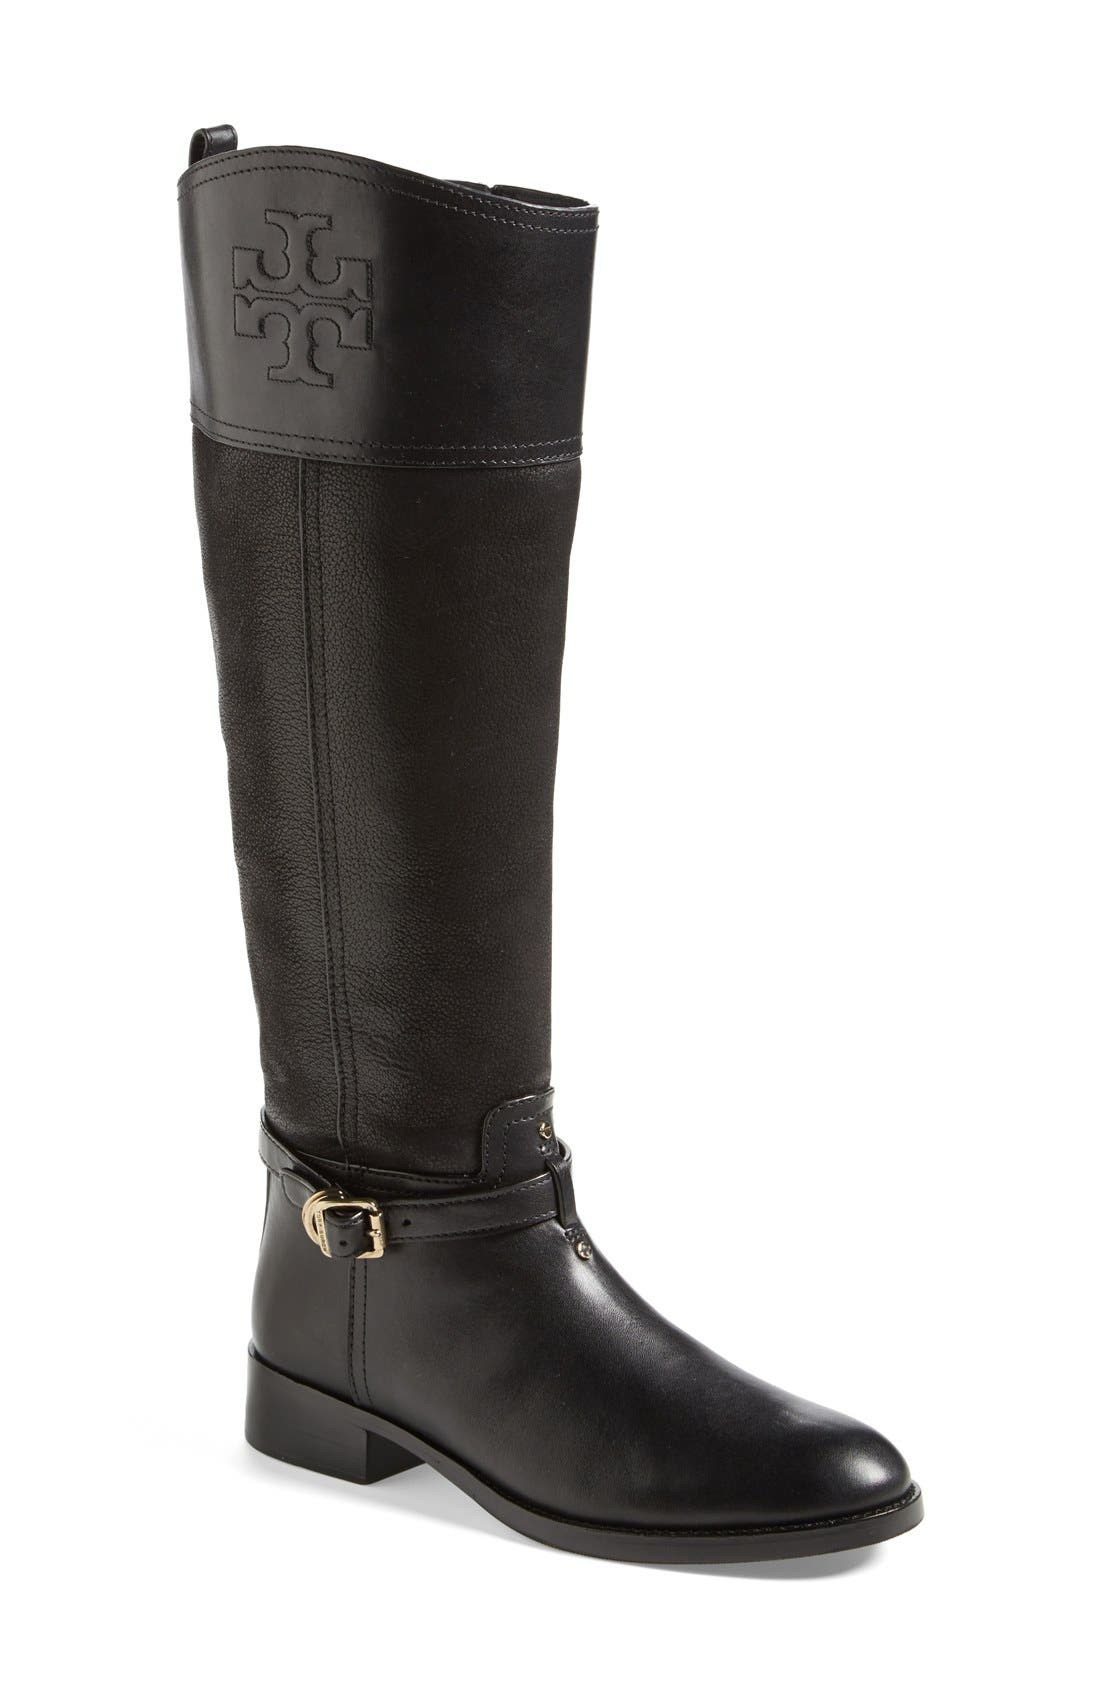 TORY BURCH, 'Simone' Riding Boot, Main thumbnail 1, color, 009